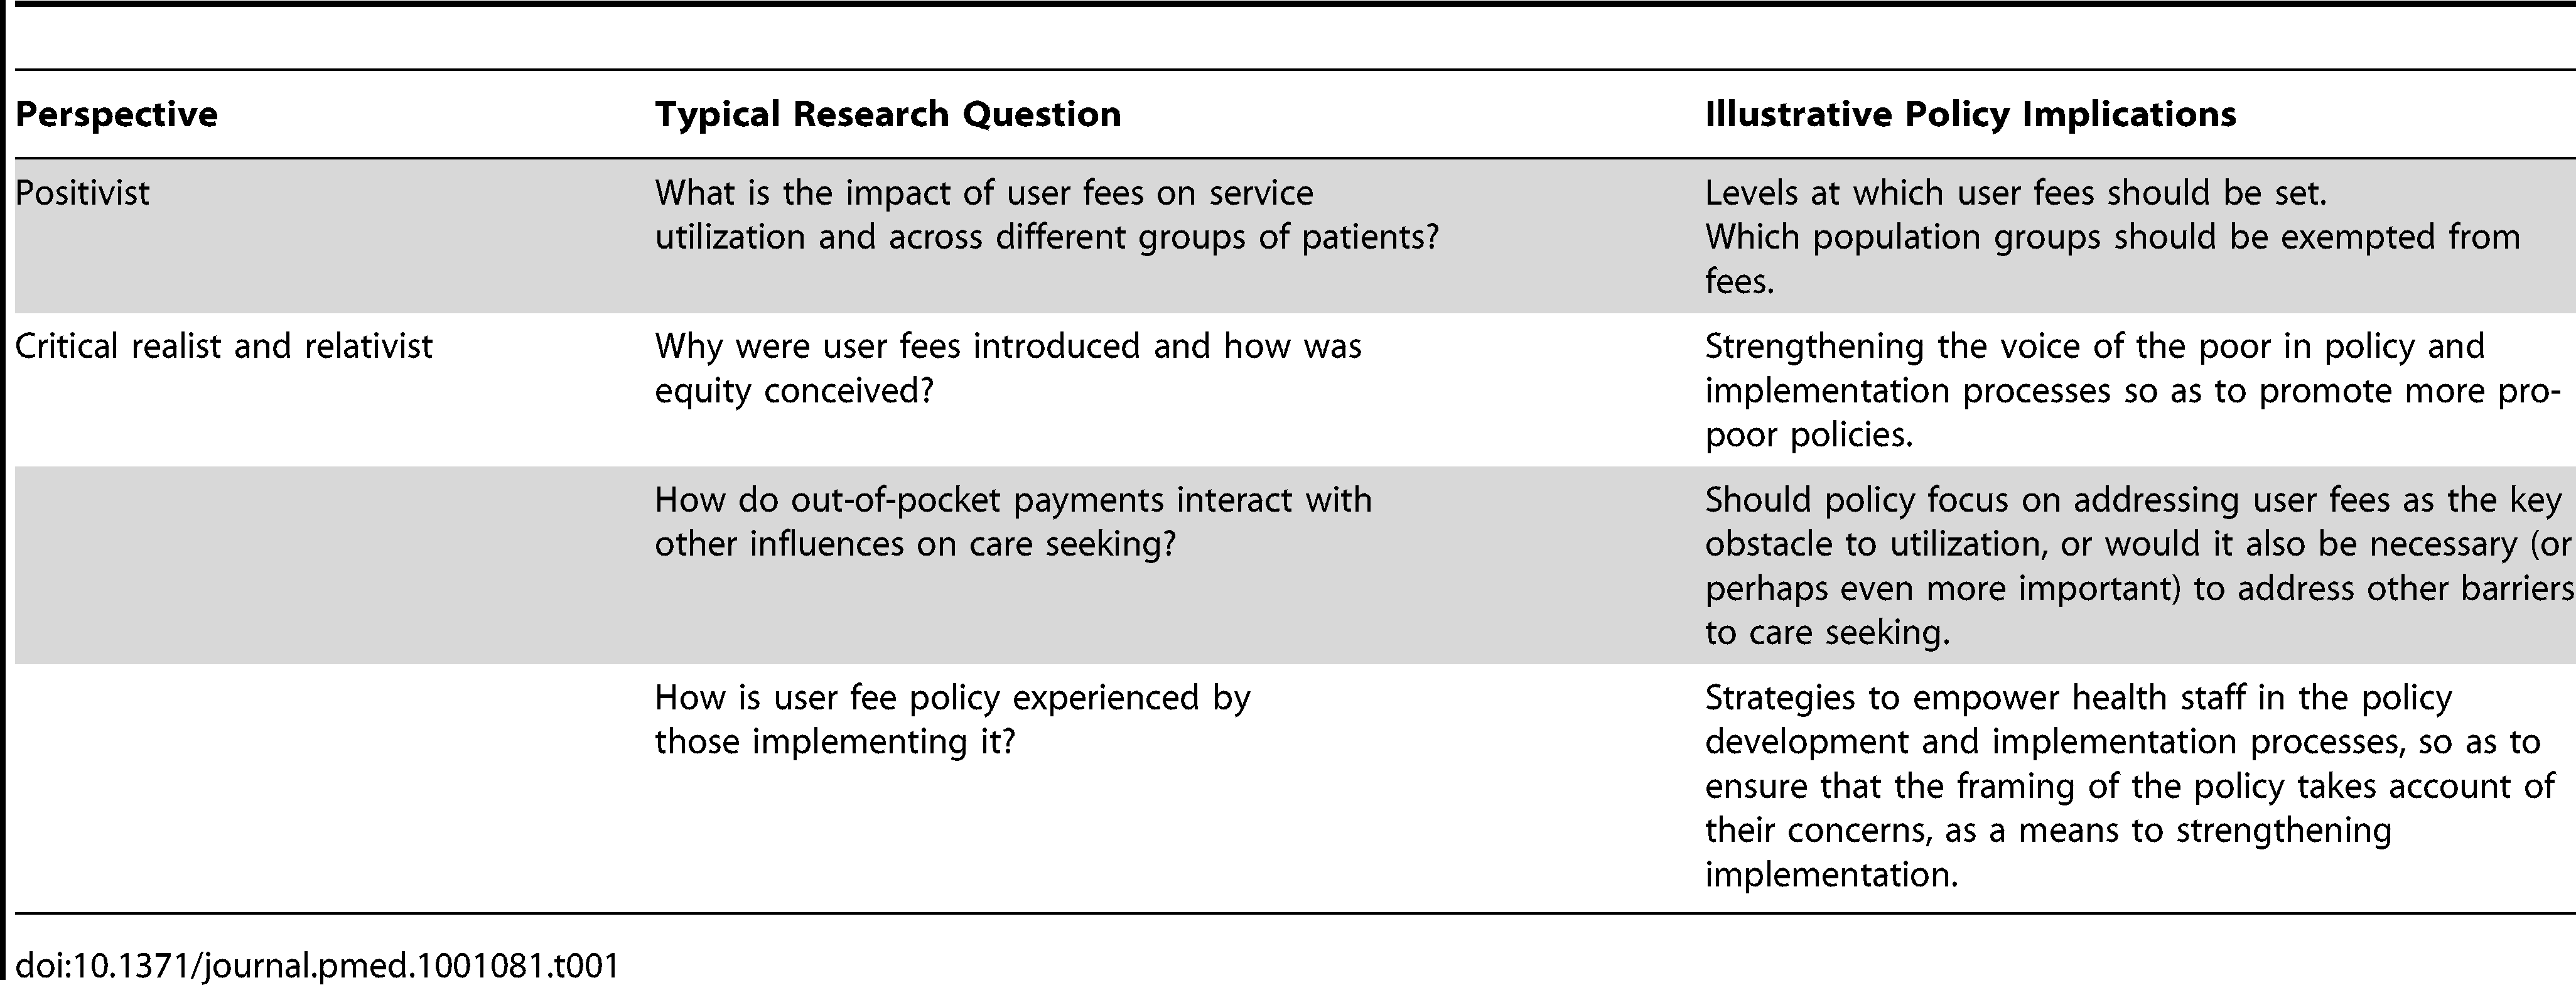 Possible policy implications of alternative types of research on user fees.